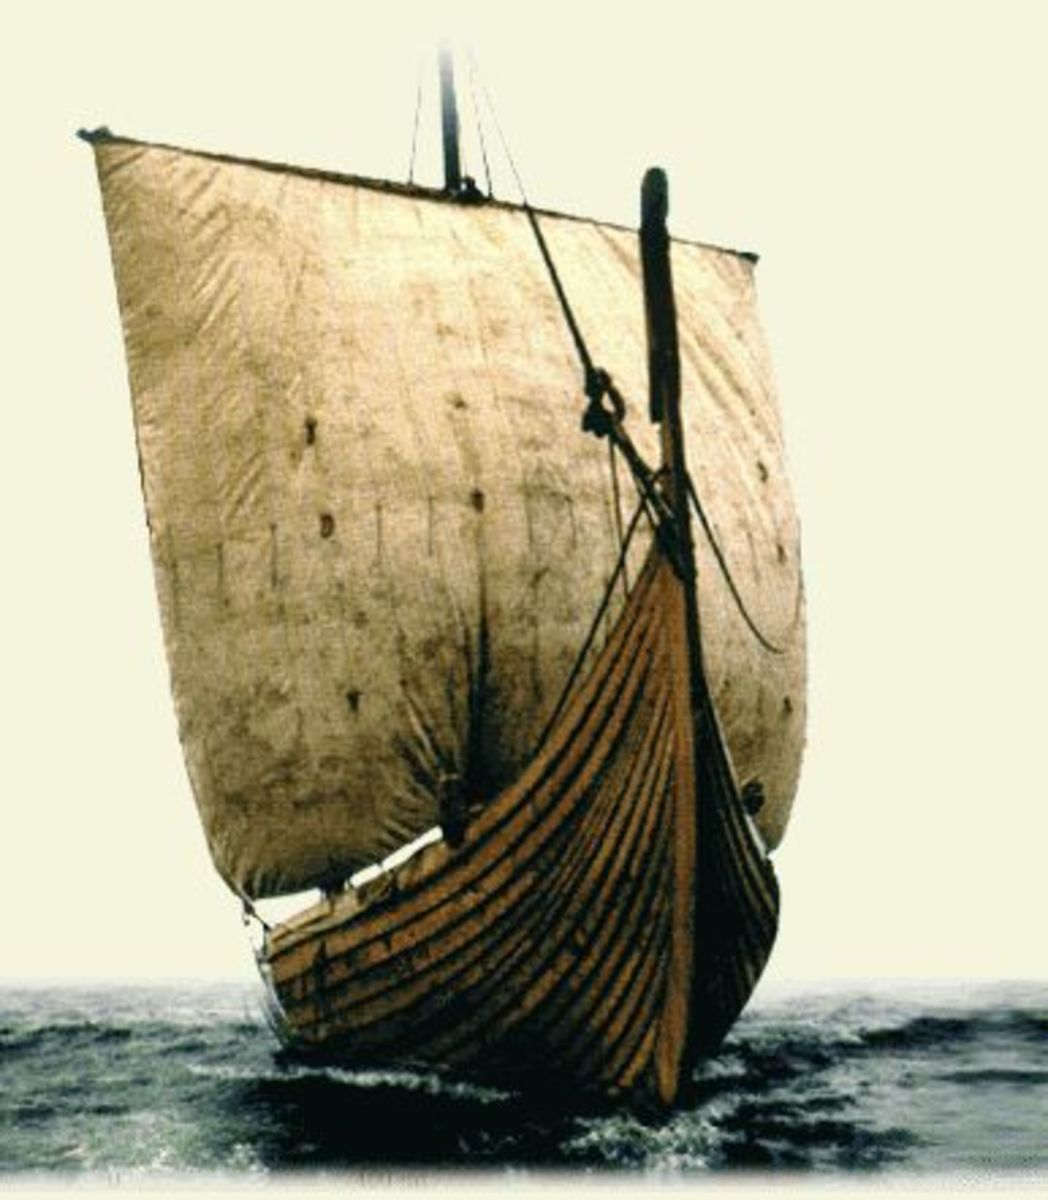 The fastest mode of transport was the ship, for warfare, trade and discovery